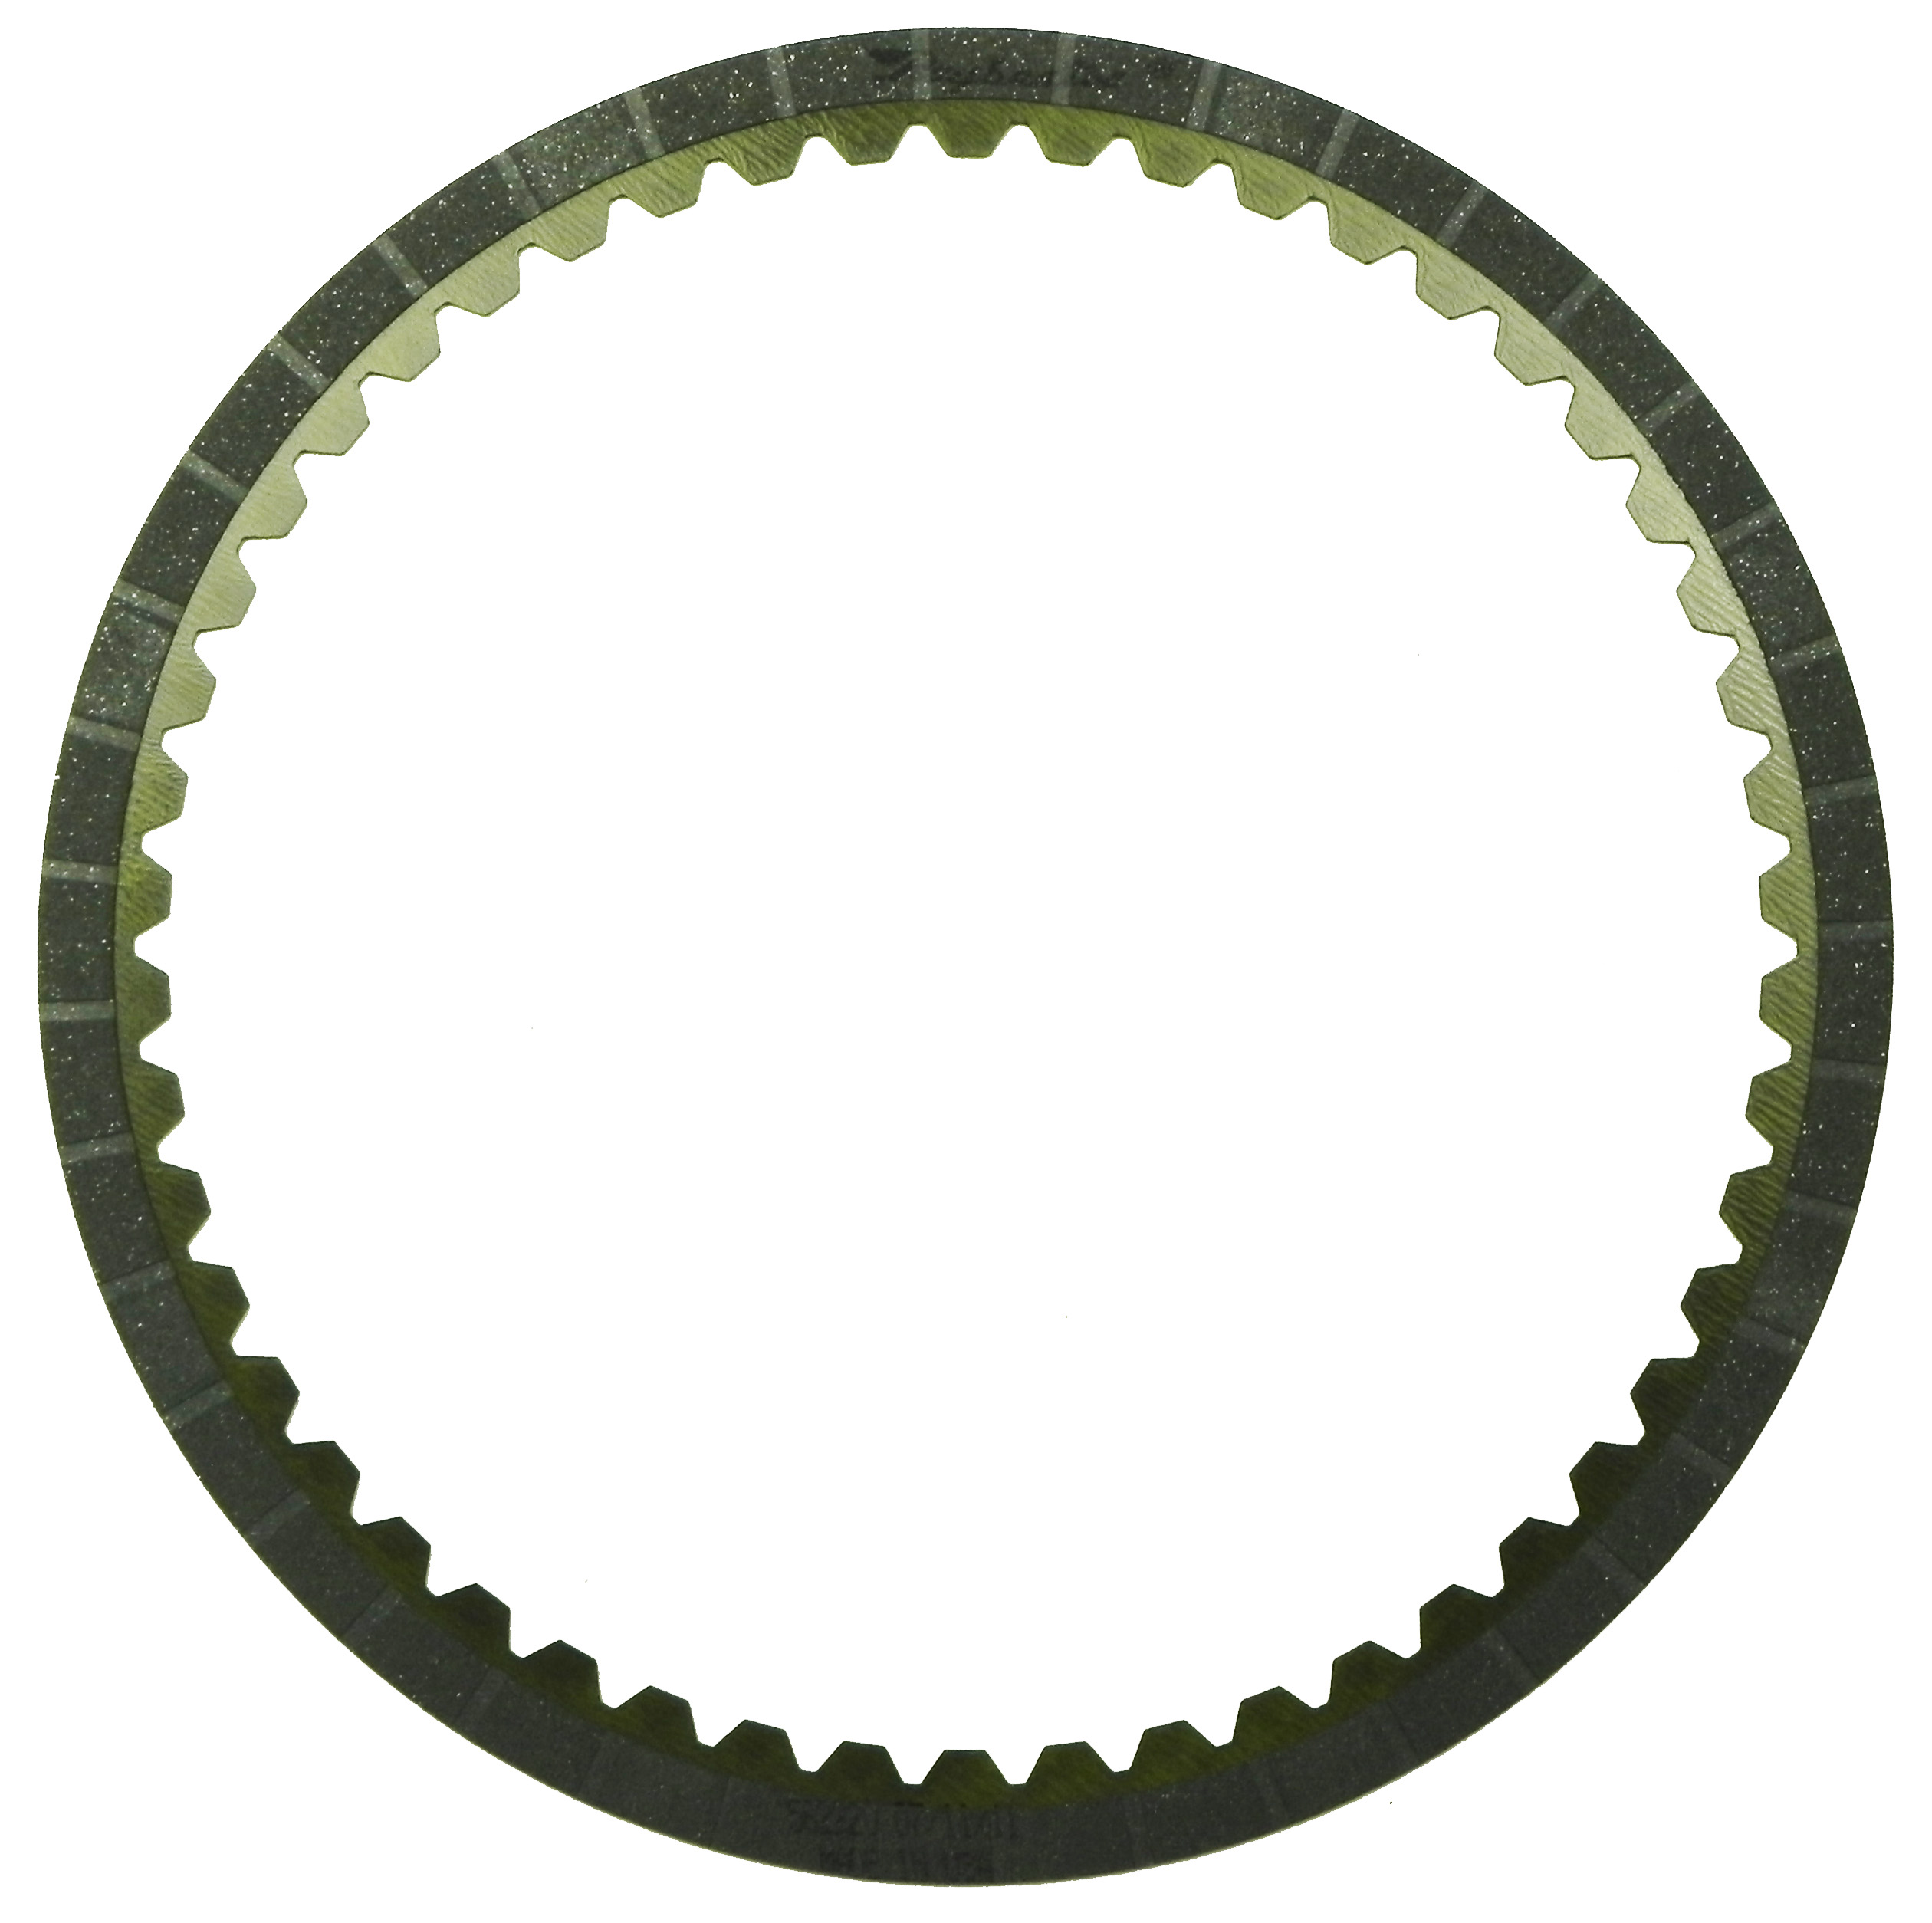 R562220 | 2007-ON Friction Clutch Plate High Energy 2nd Brake High Energy